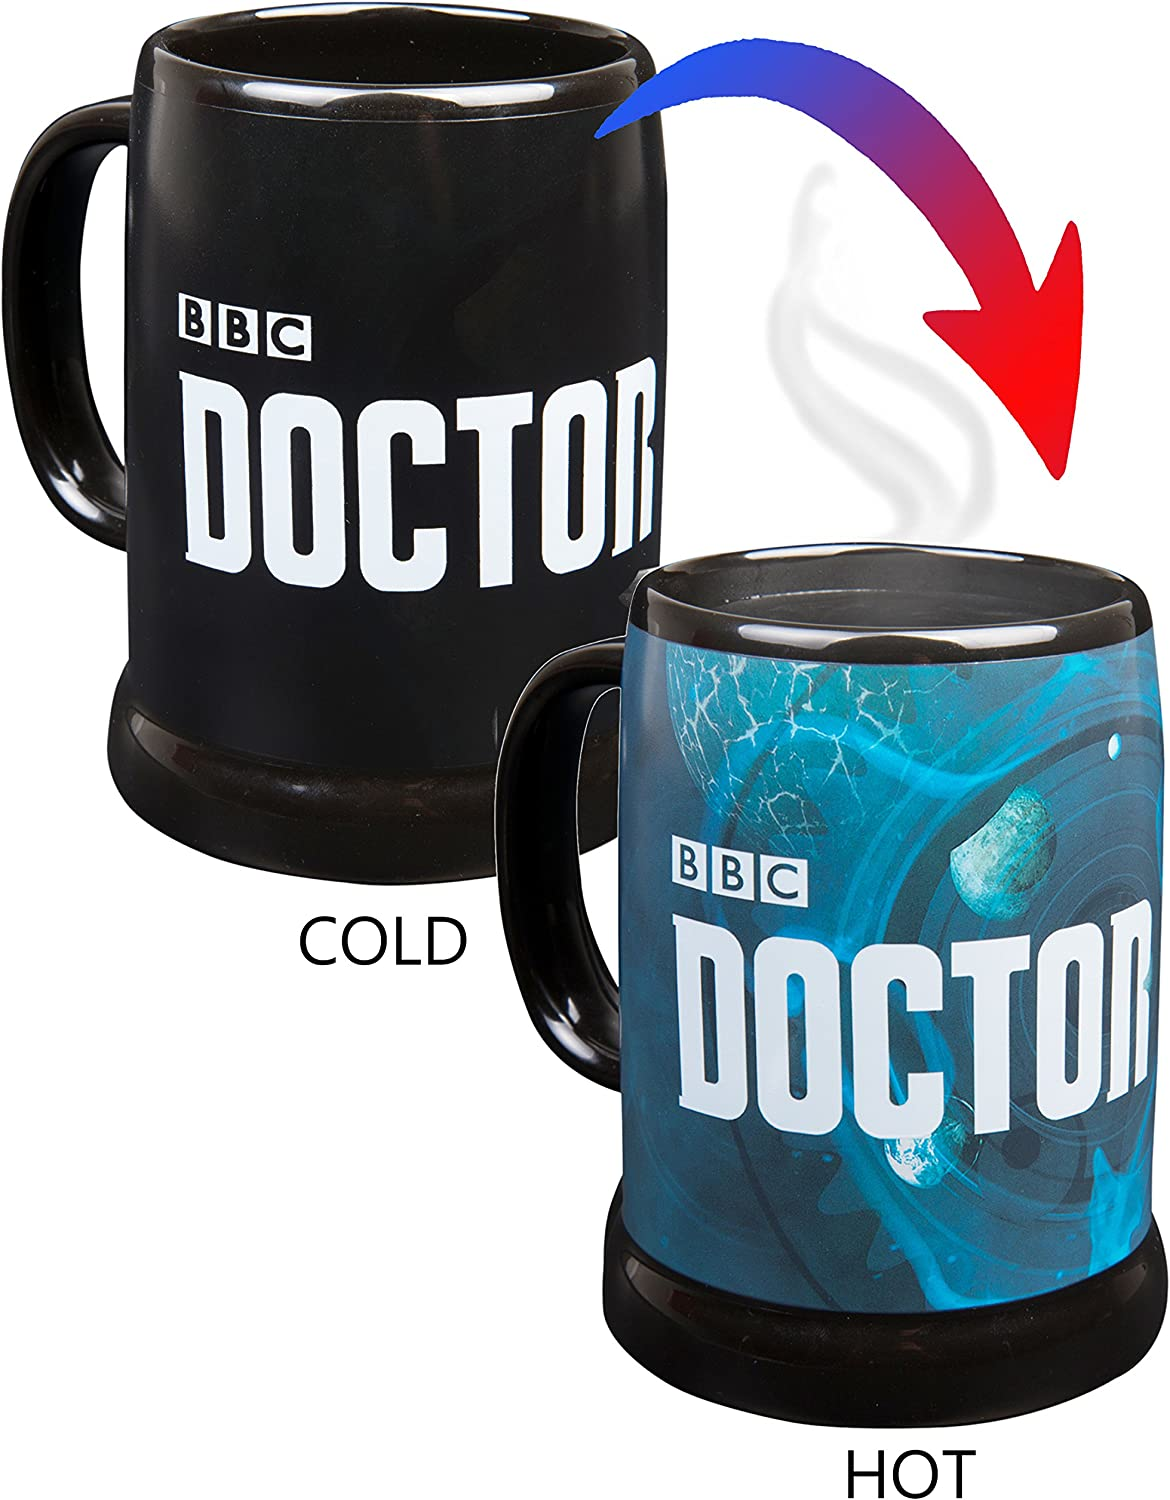 Doctor Who Heat Reveal Stein Coffee Mug - Dr. Who Logo Activates with Heat - 20 oz